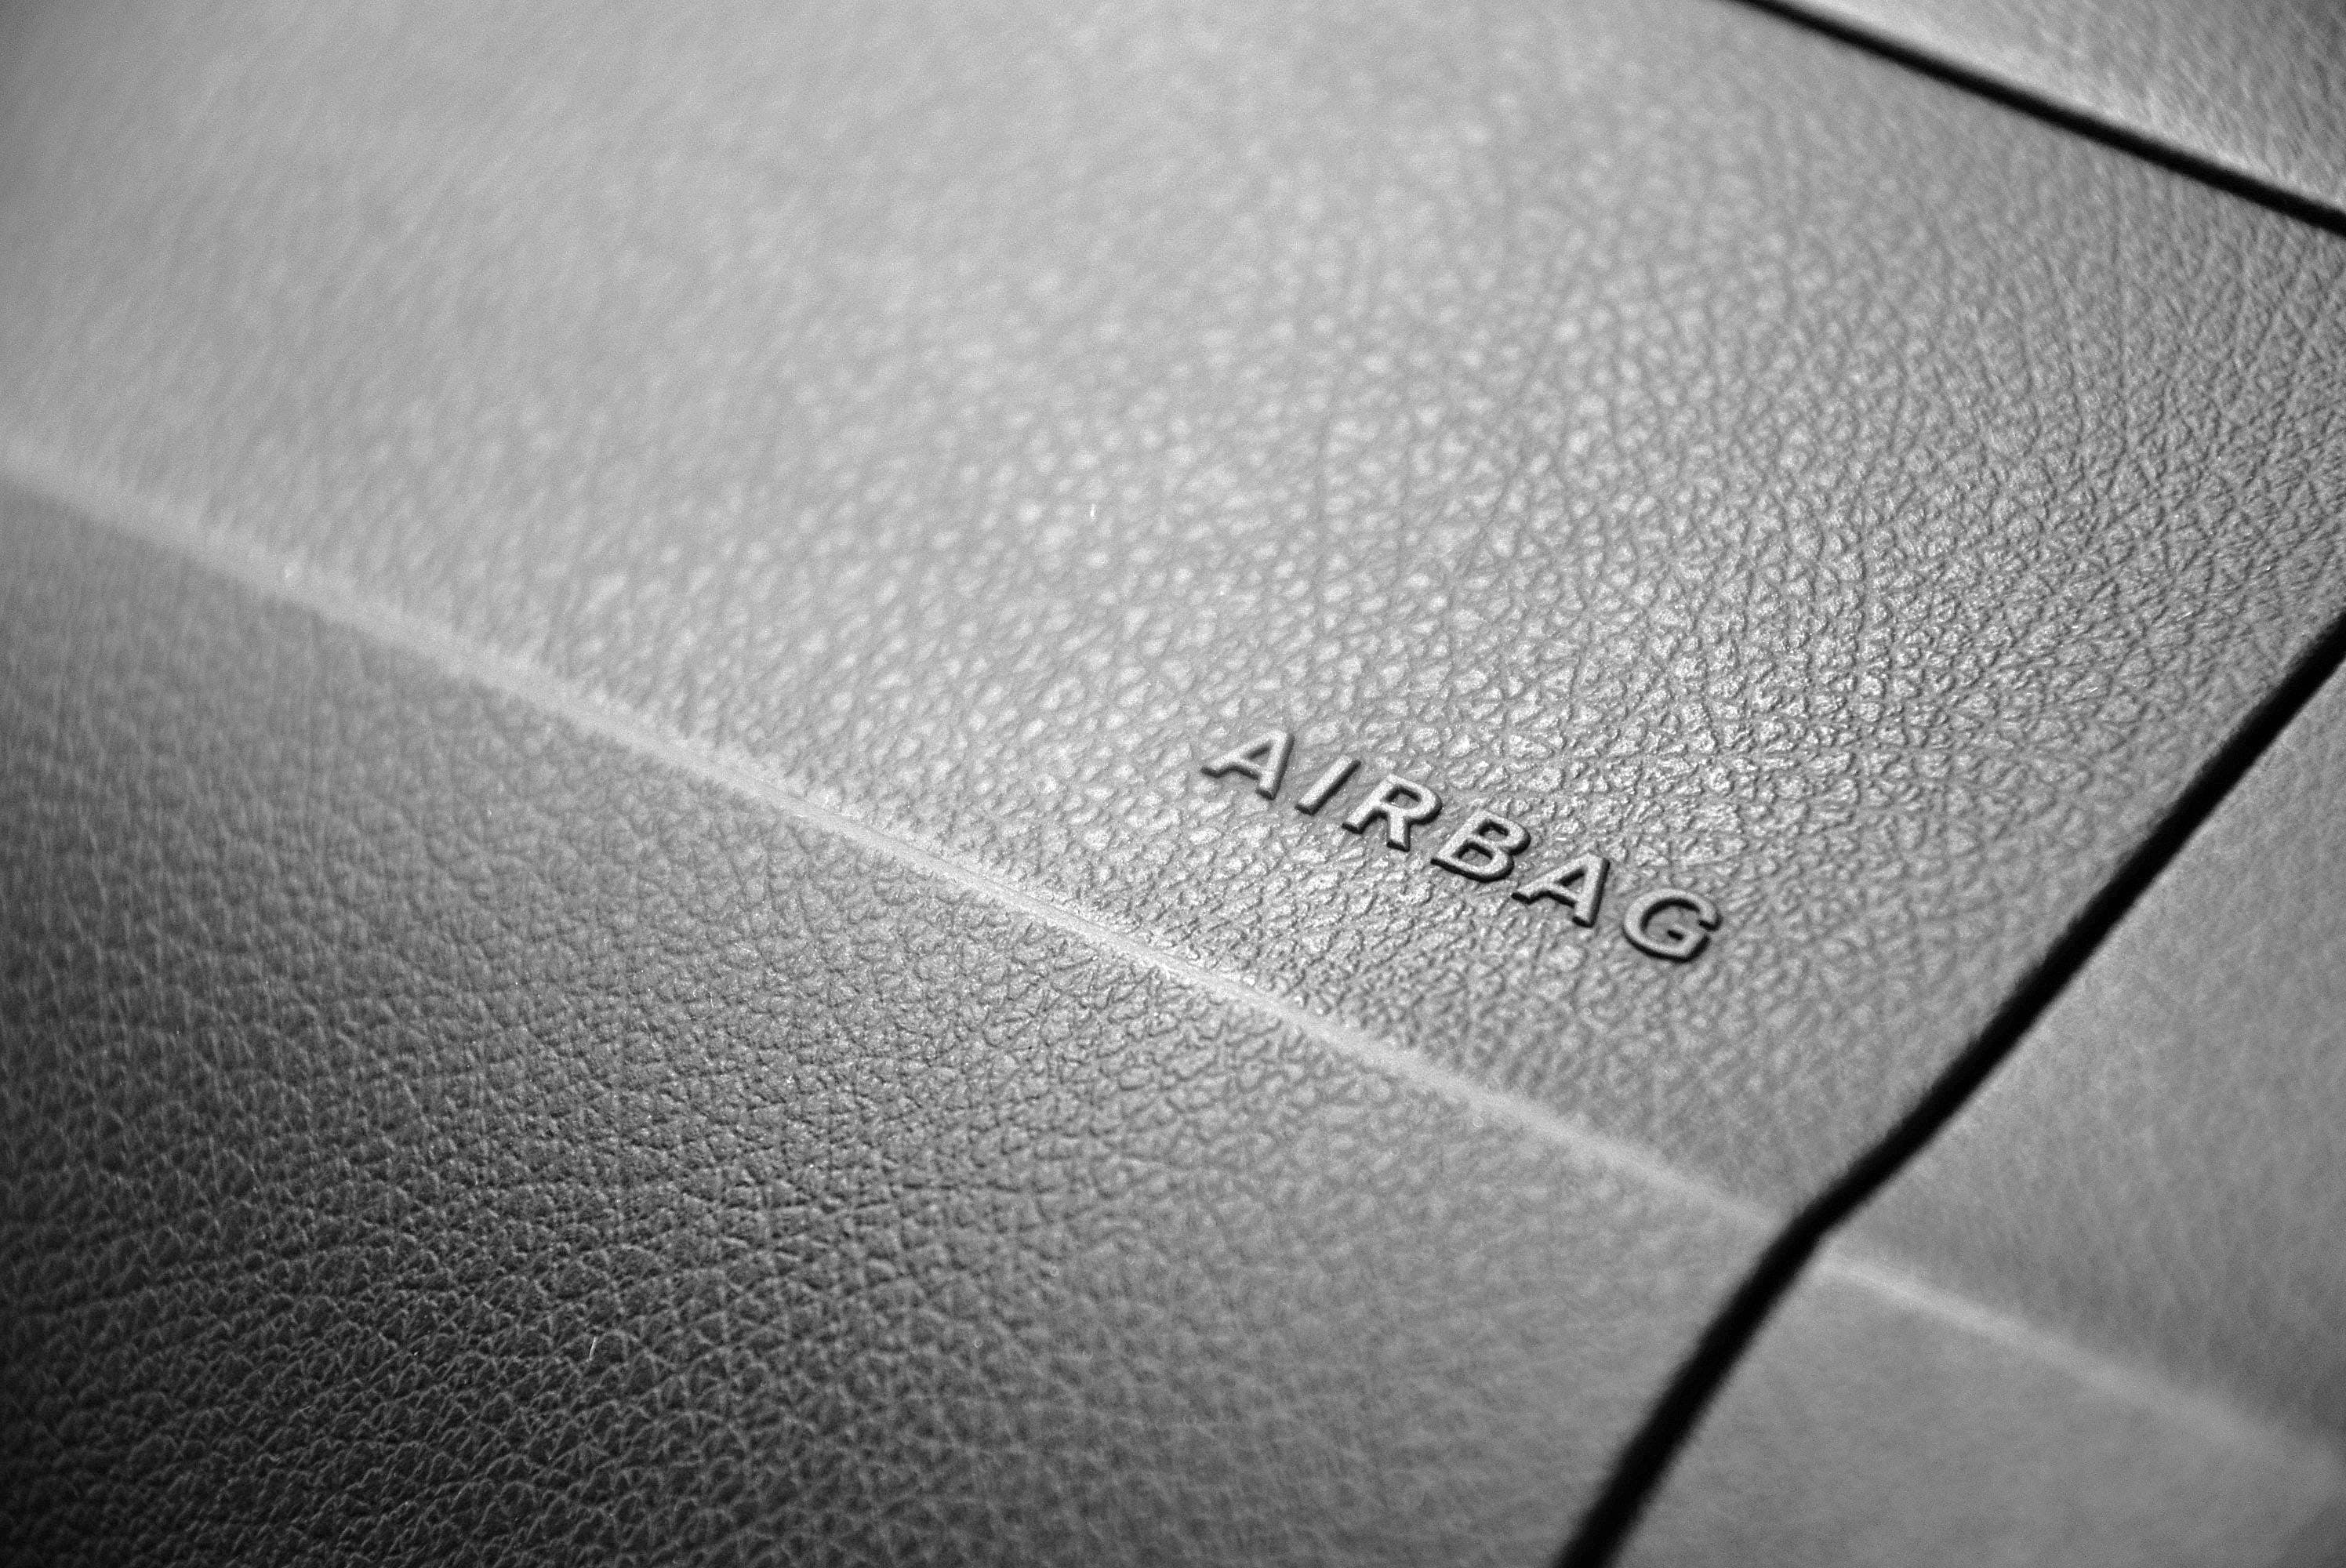 airbag, background, black-and-white